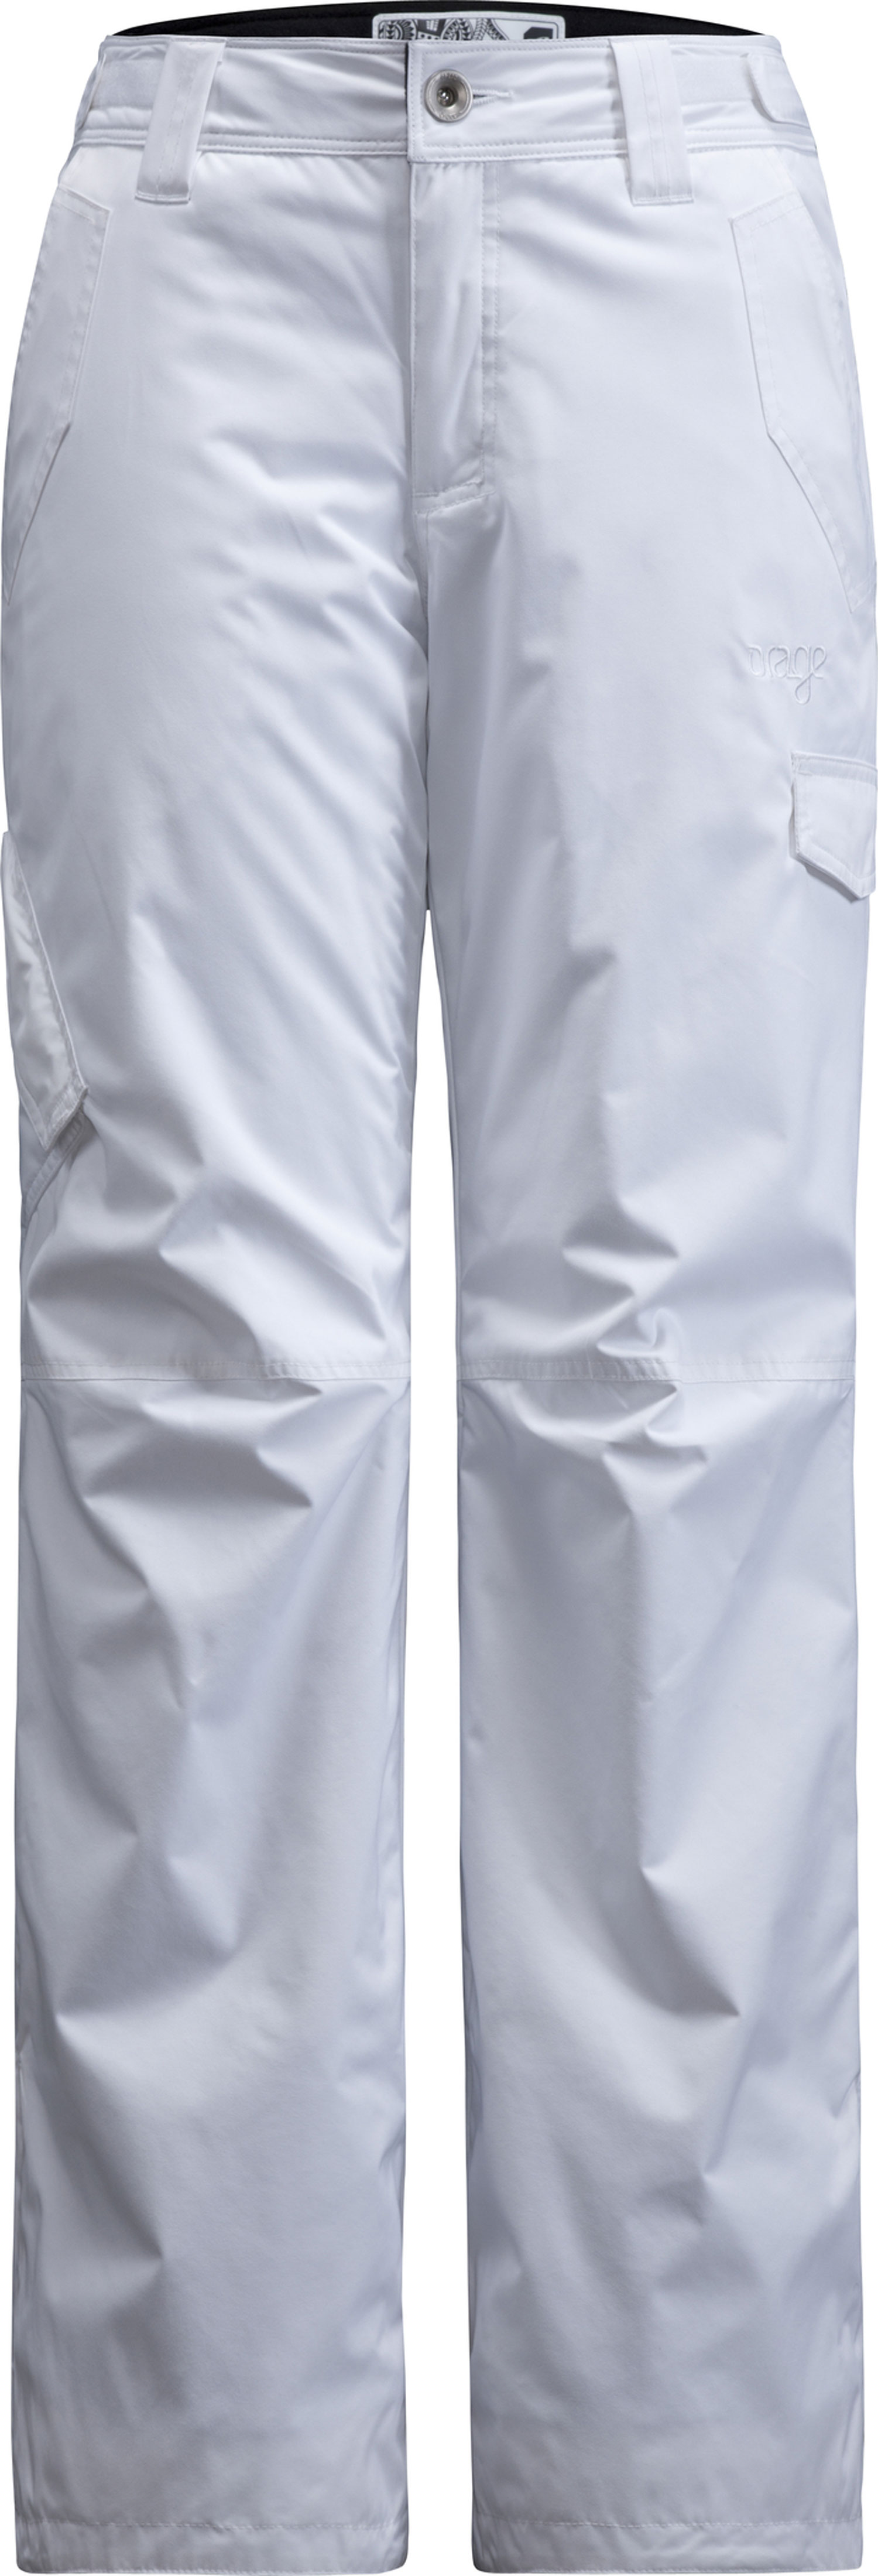 Ski Key Features of the Orage Bell Ski Pants: Prime 10: Nylon twill 2 ply 100% Nylon, ECO DWR 80/10, 160g/m2 Strategically seam sealed Adjustable waist band Lower leg reinforcement Snow gaiters with elastic grip - $119.95